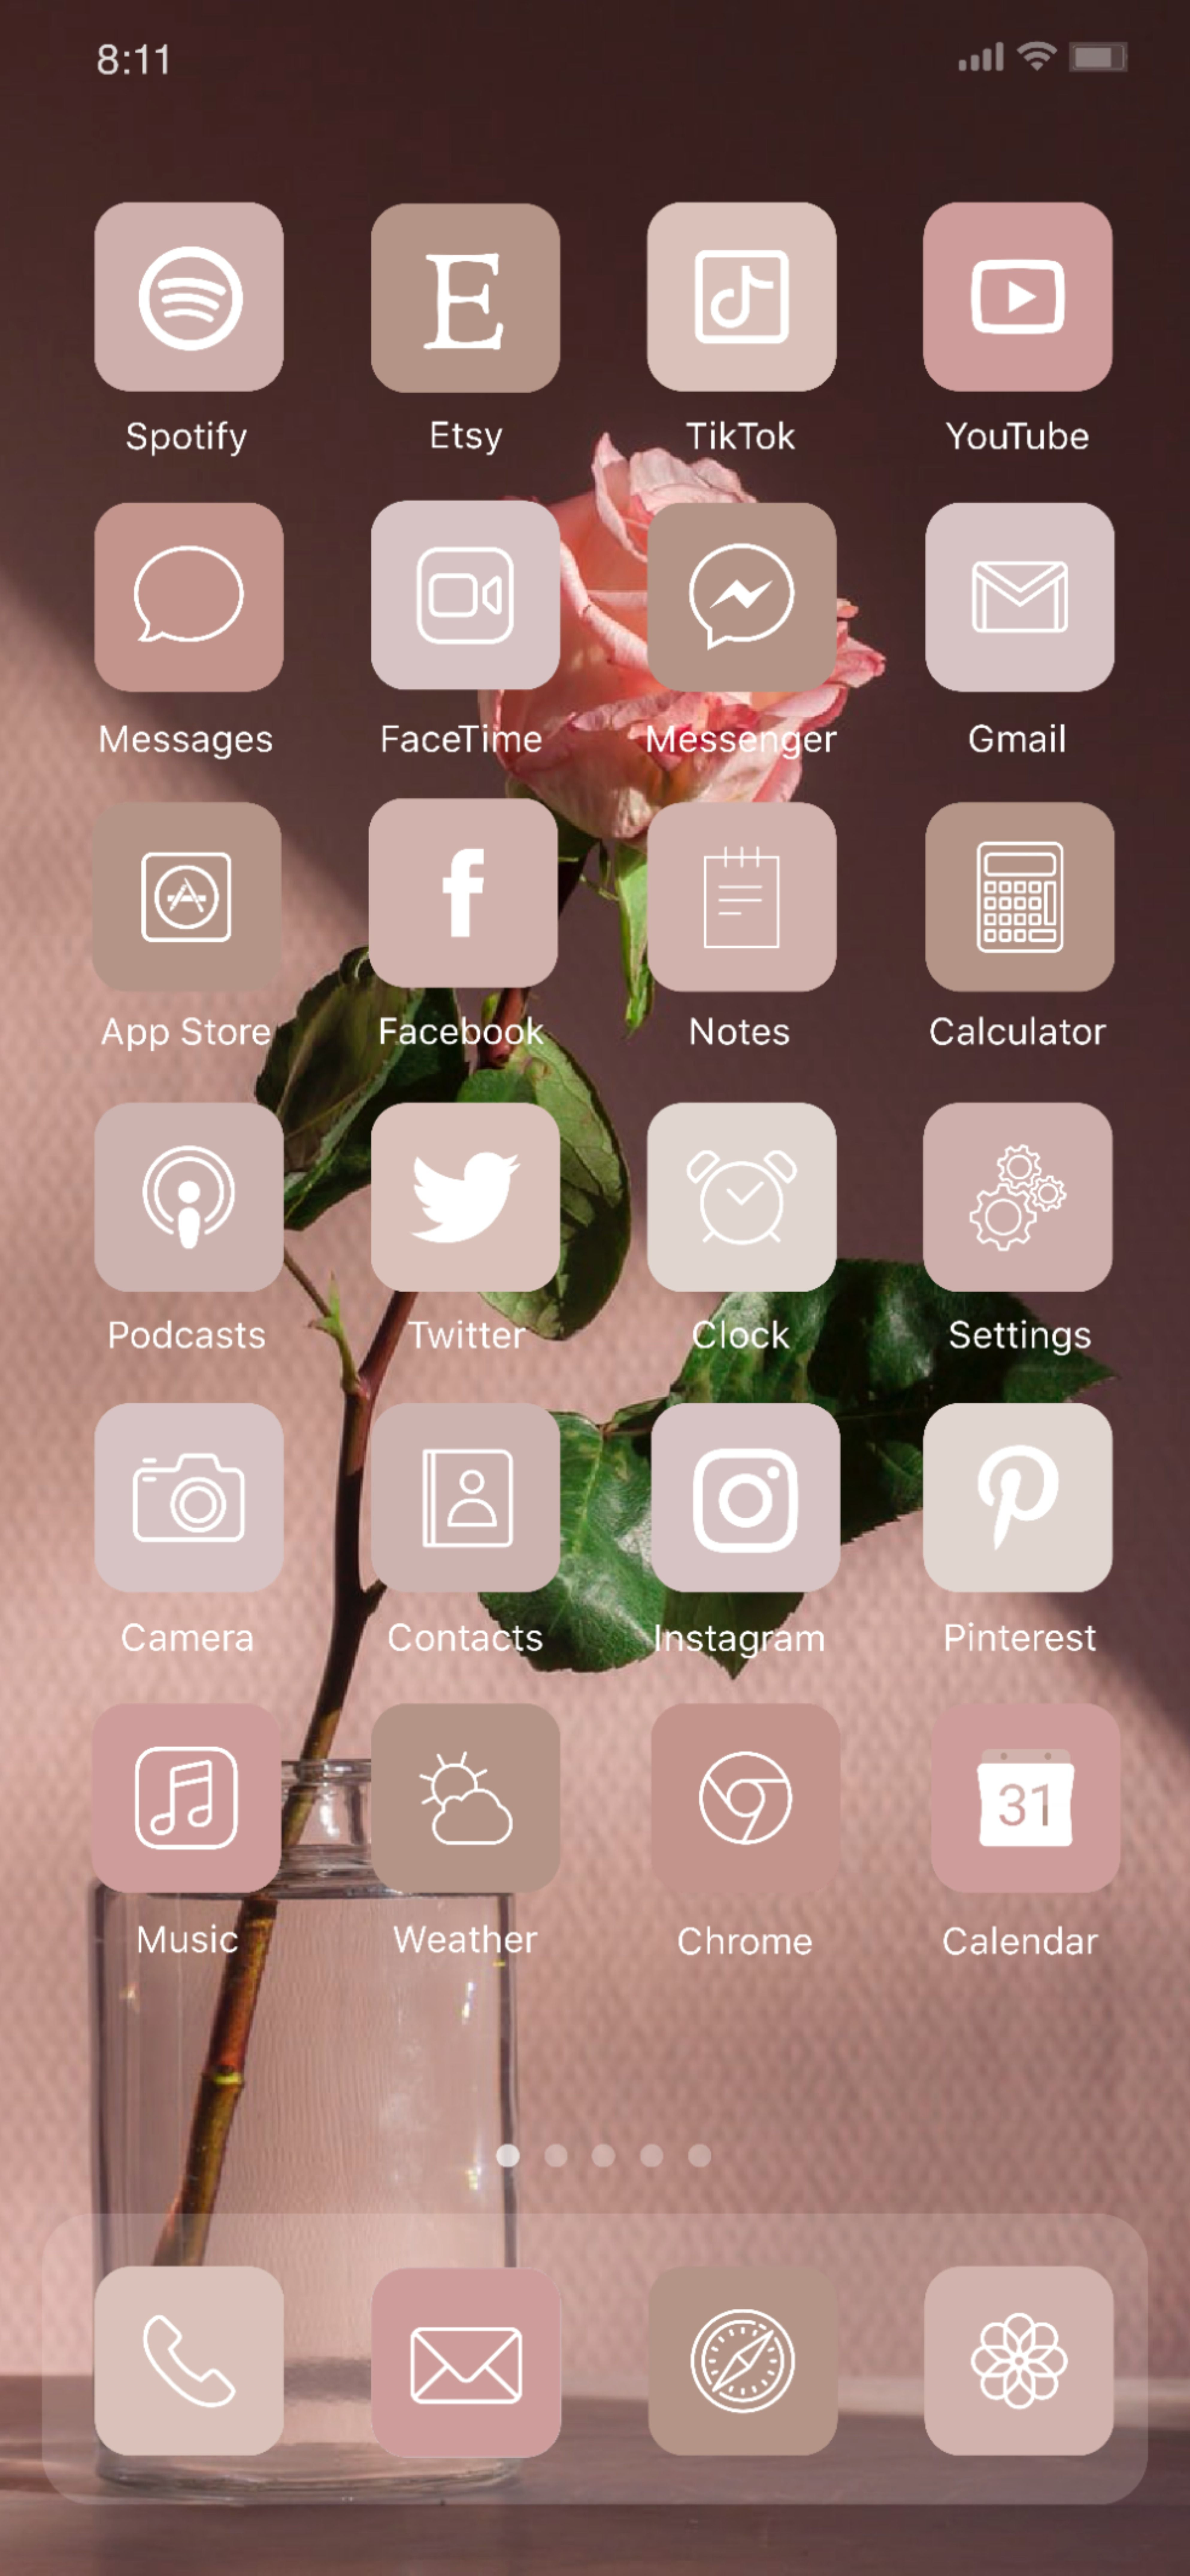 Rose Pink Neutral Aesthetic Iphone App Icon Home Screen Ideas Inspo Inspiration App Covers Ios 14 In 2021 App Icon Homescreen App Covers